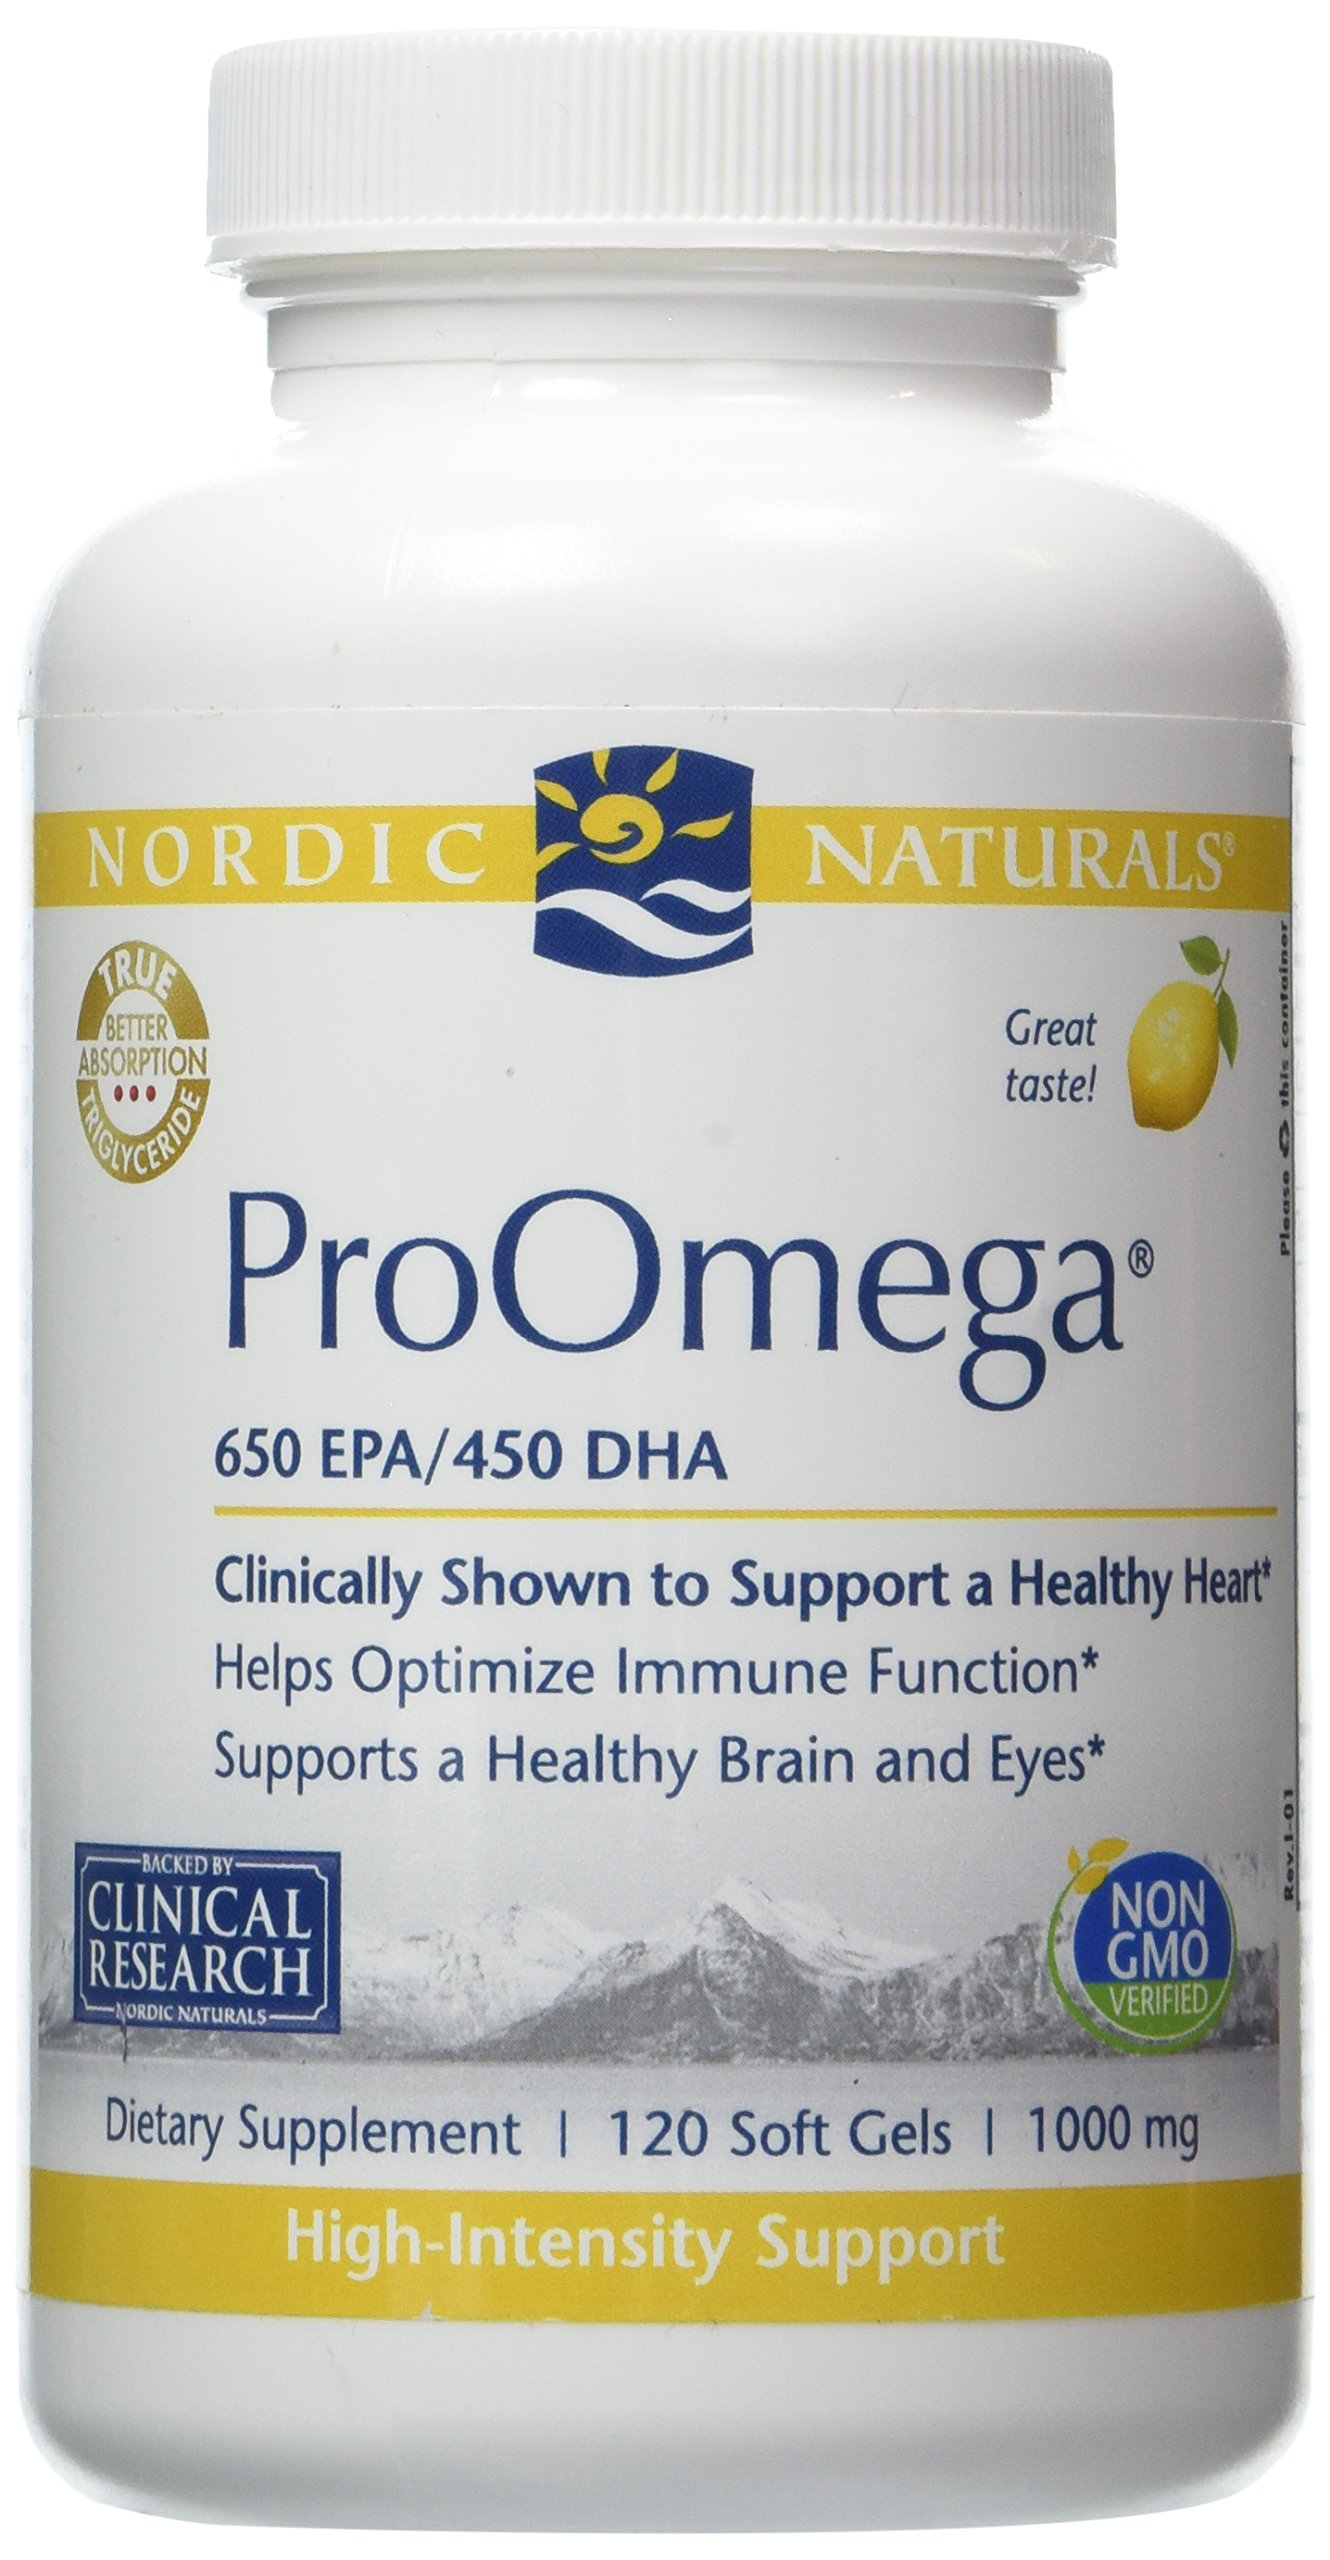 Nordic Naturals - ProOmega (Lemon) 1000 mg- 120ct